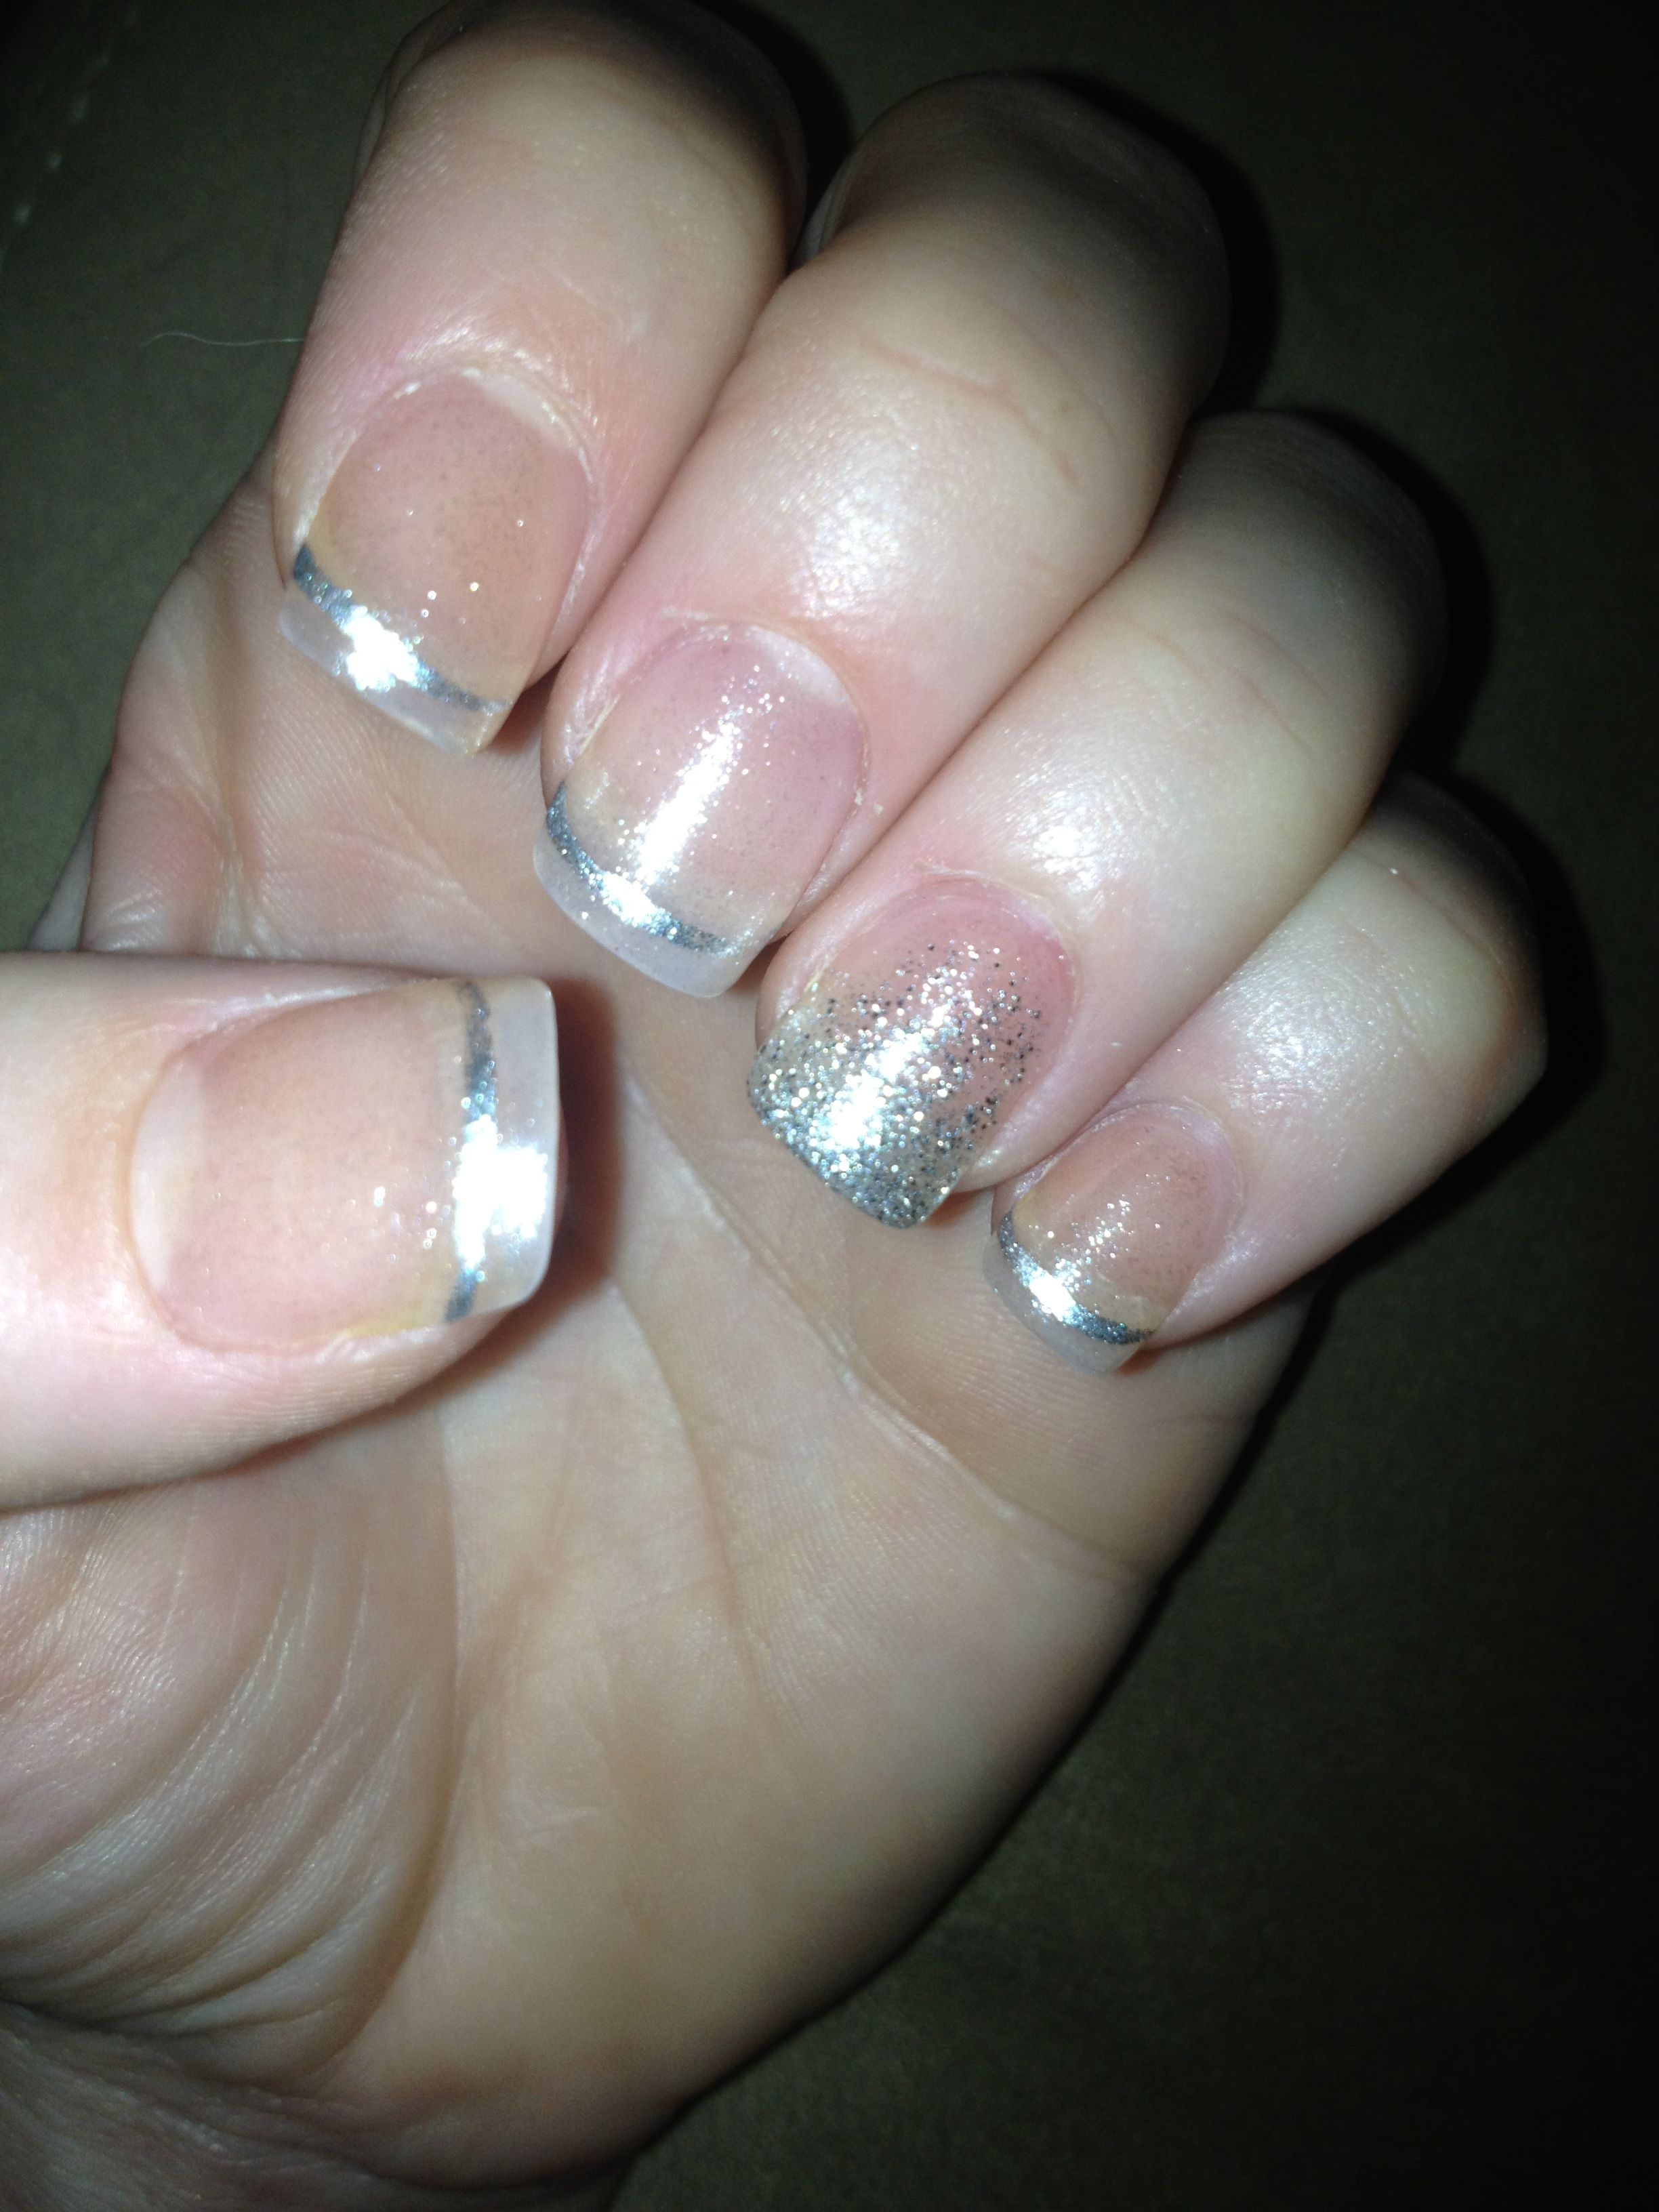 My Nails My Daughter Victoria Aspen Paid For Yesterday 1st Time In Over 4yrs Since I Had Acrylic Nails They Did Them So Lo Fashion Nails Nails Acrylic Nails